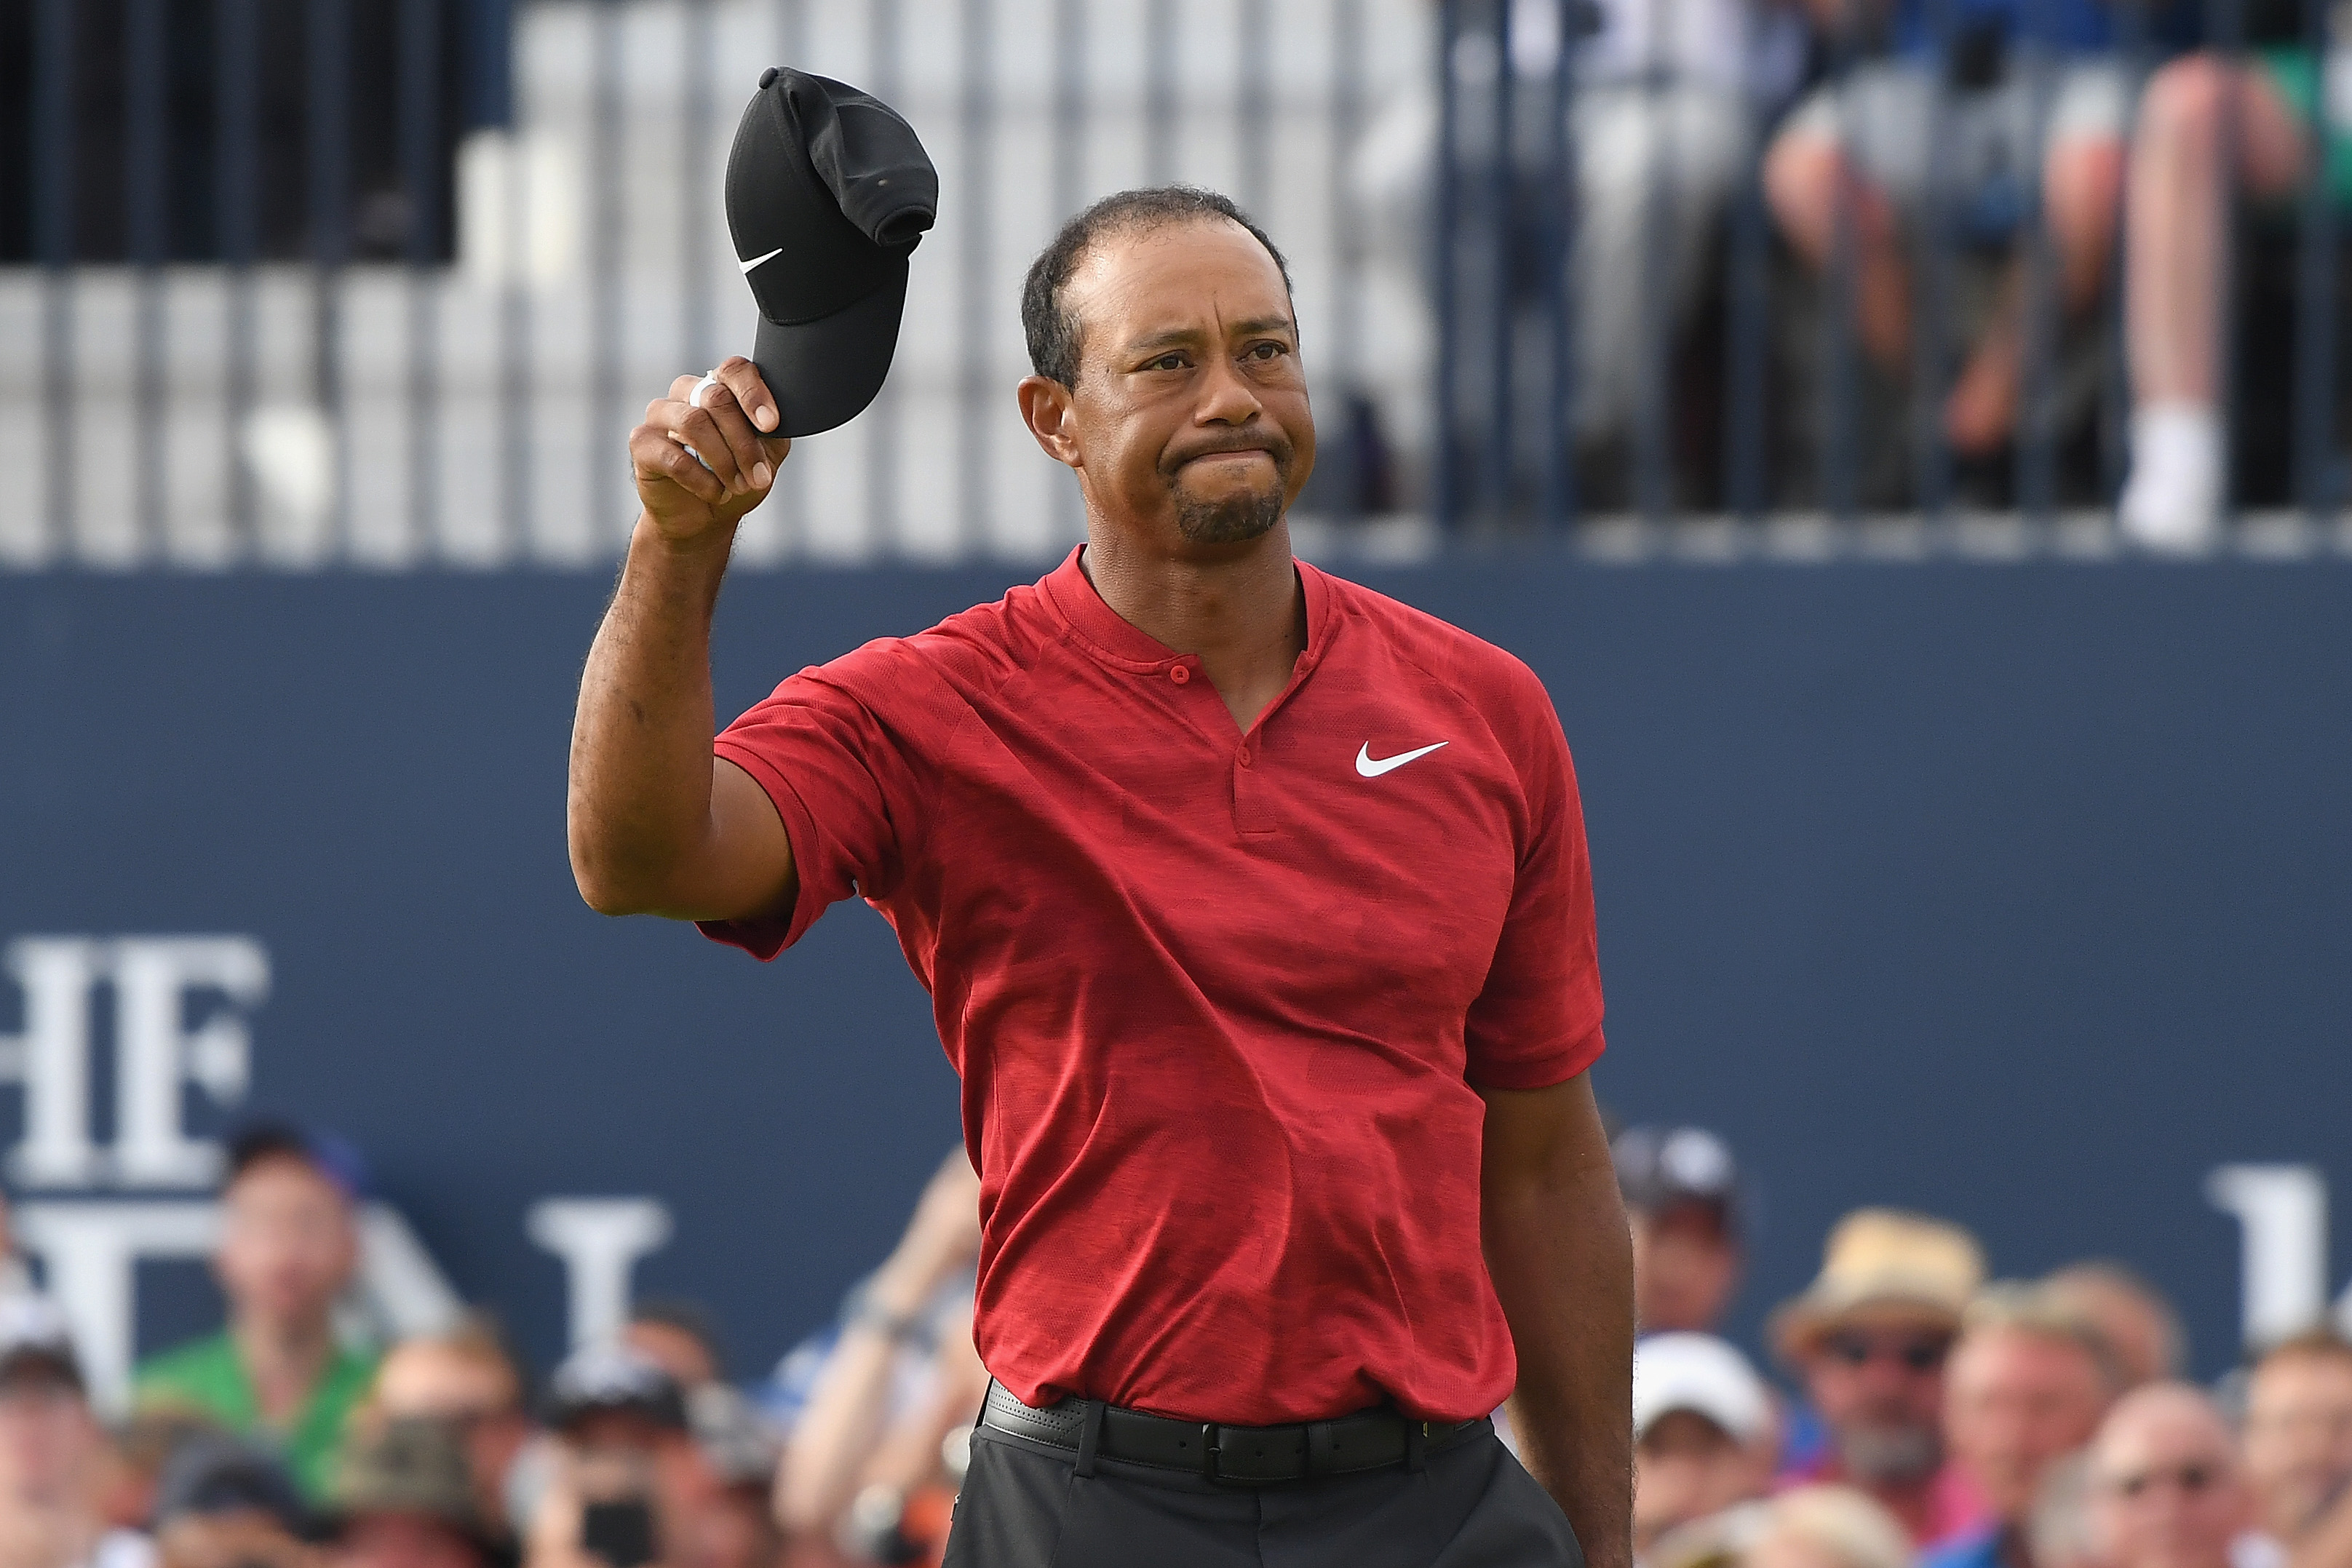 Tiger Woods acknowledges the crowd on the 18th green during the final round of the 147th Open Championship at Carnoustie Golf Club on July 22, 2018 in Carnoustie, Scotland.